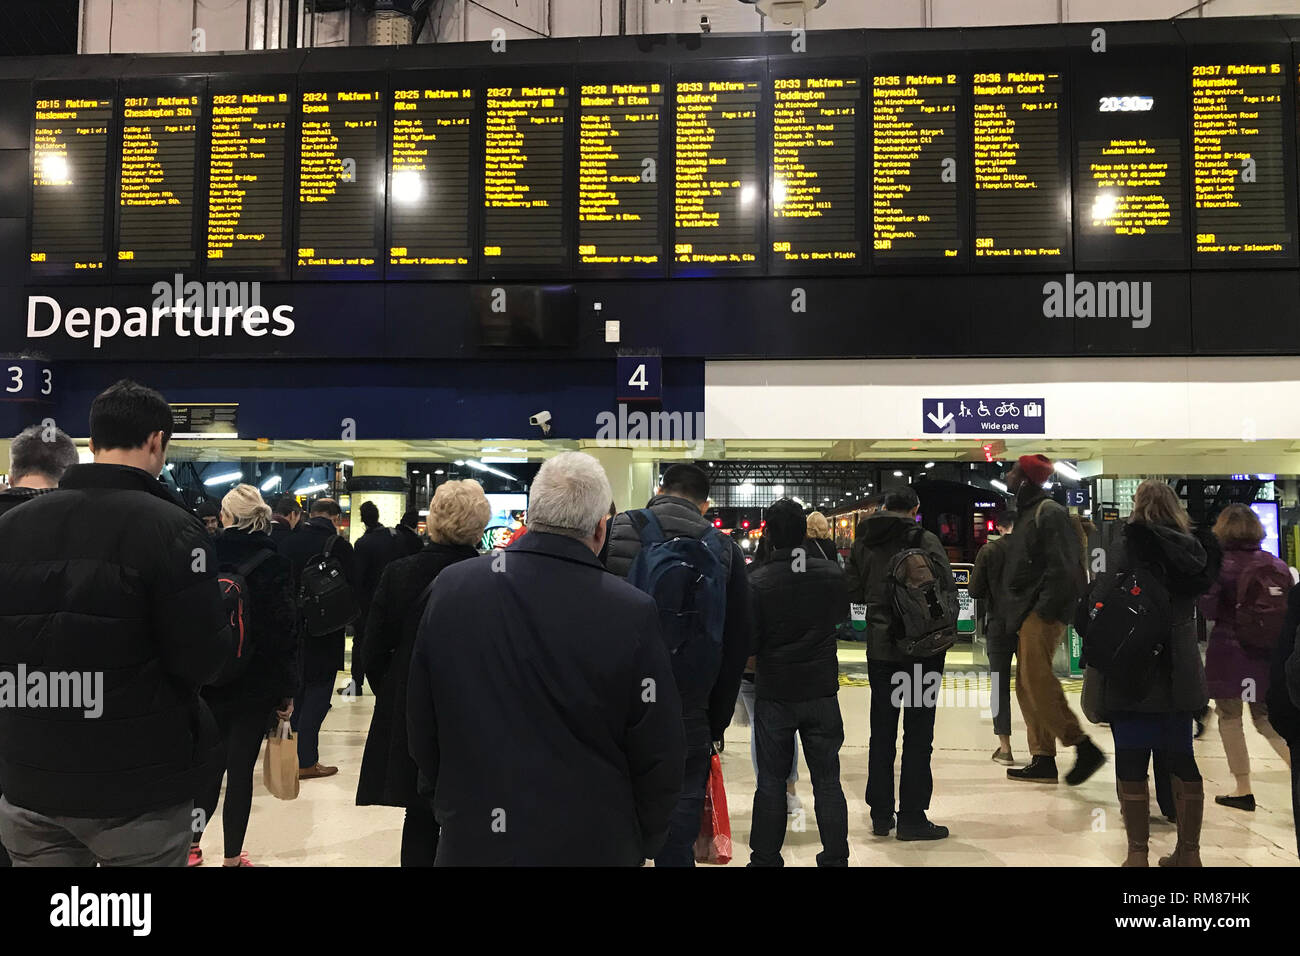 People at Waterloo Station in London, after trains were brought to a standstill during rush hour, resulting in hundreds of commuters being packed into Waterloo Station, following a trespasser getting on to the railway lines. - Stock Image